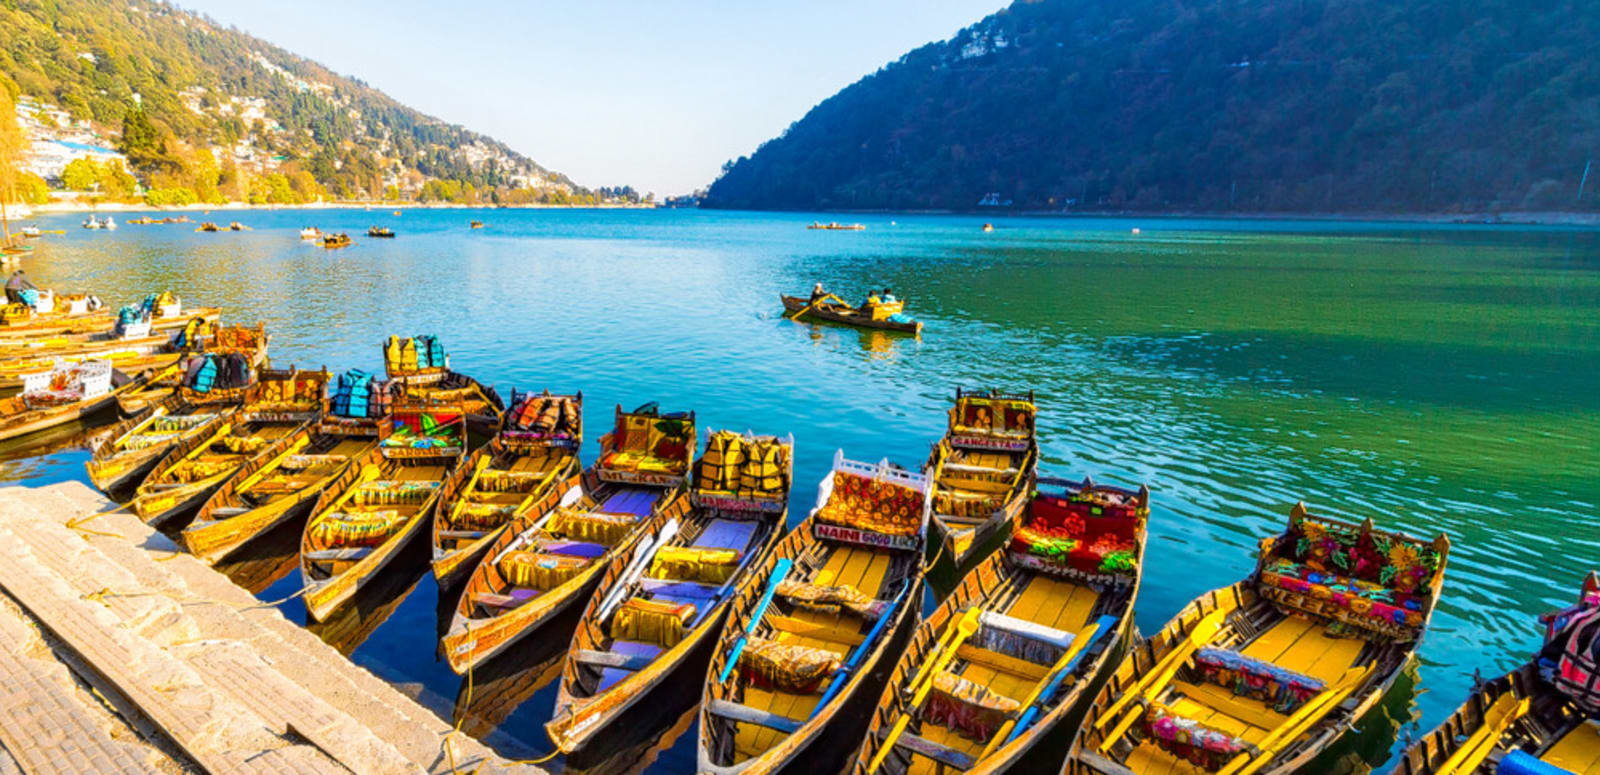 dc1f70f8c69 15 Best Places to Visit near Nainital - 2019 (Photos   Reviews)